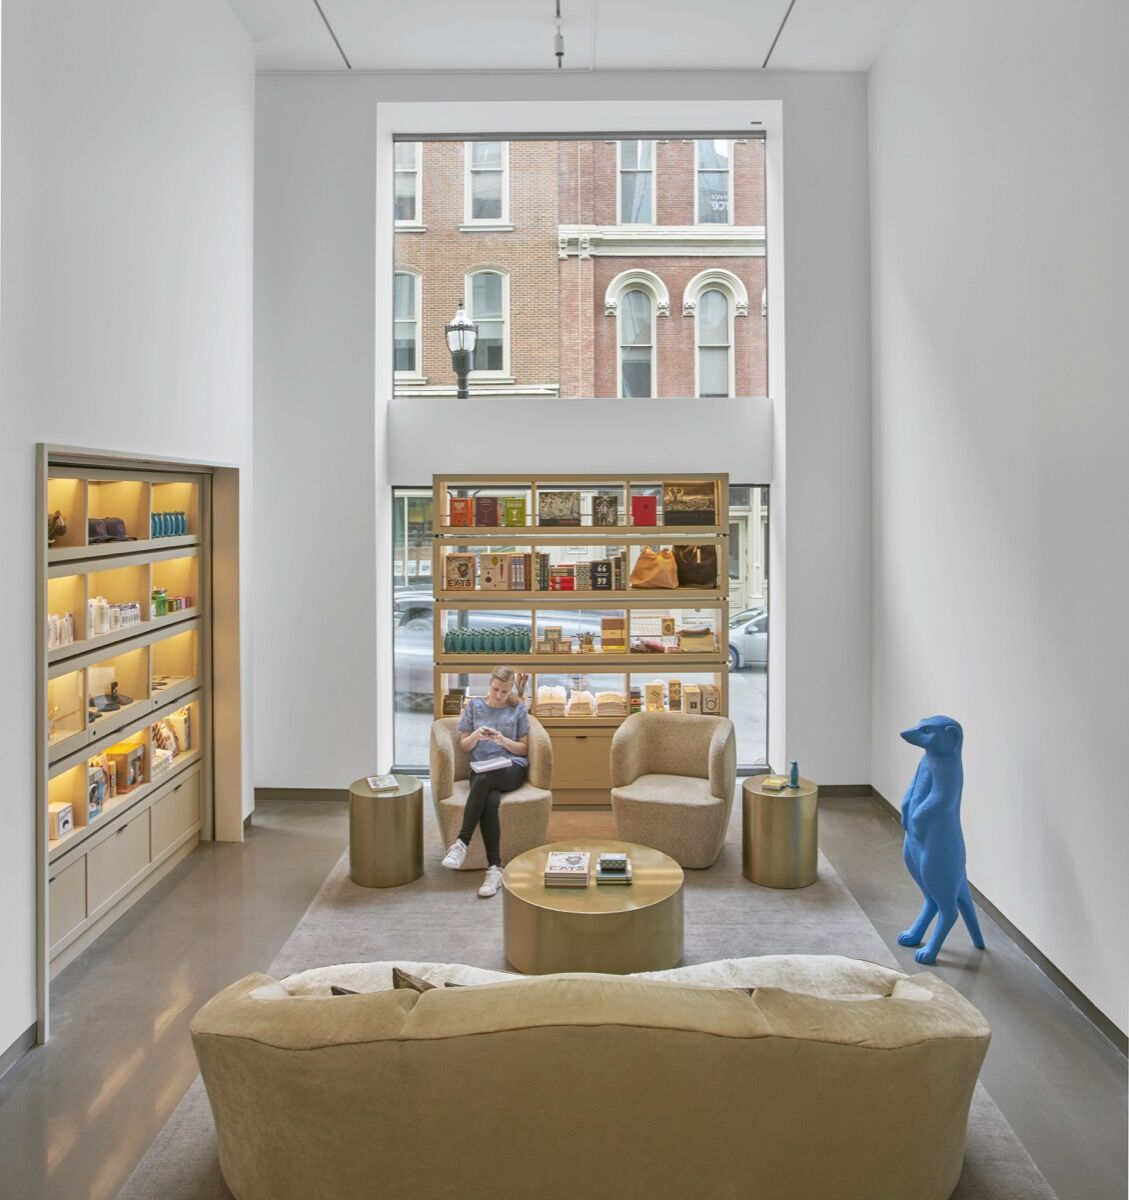 Lobby retail shop at 21c Nashville. Photo by Mike Schwartz. Courtesy of 21c Museum Hotels.